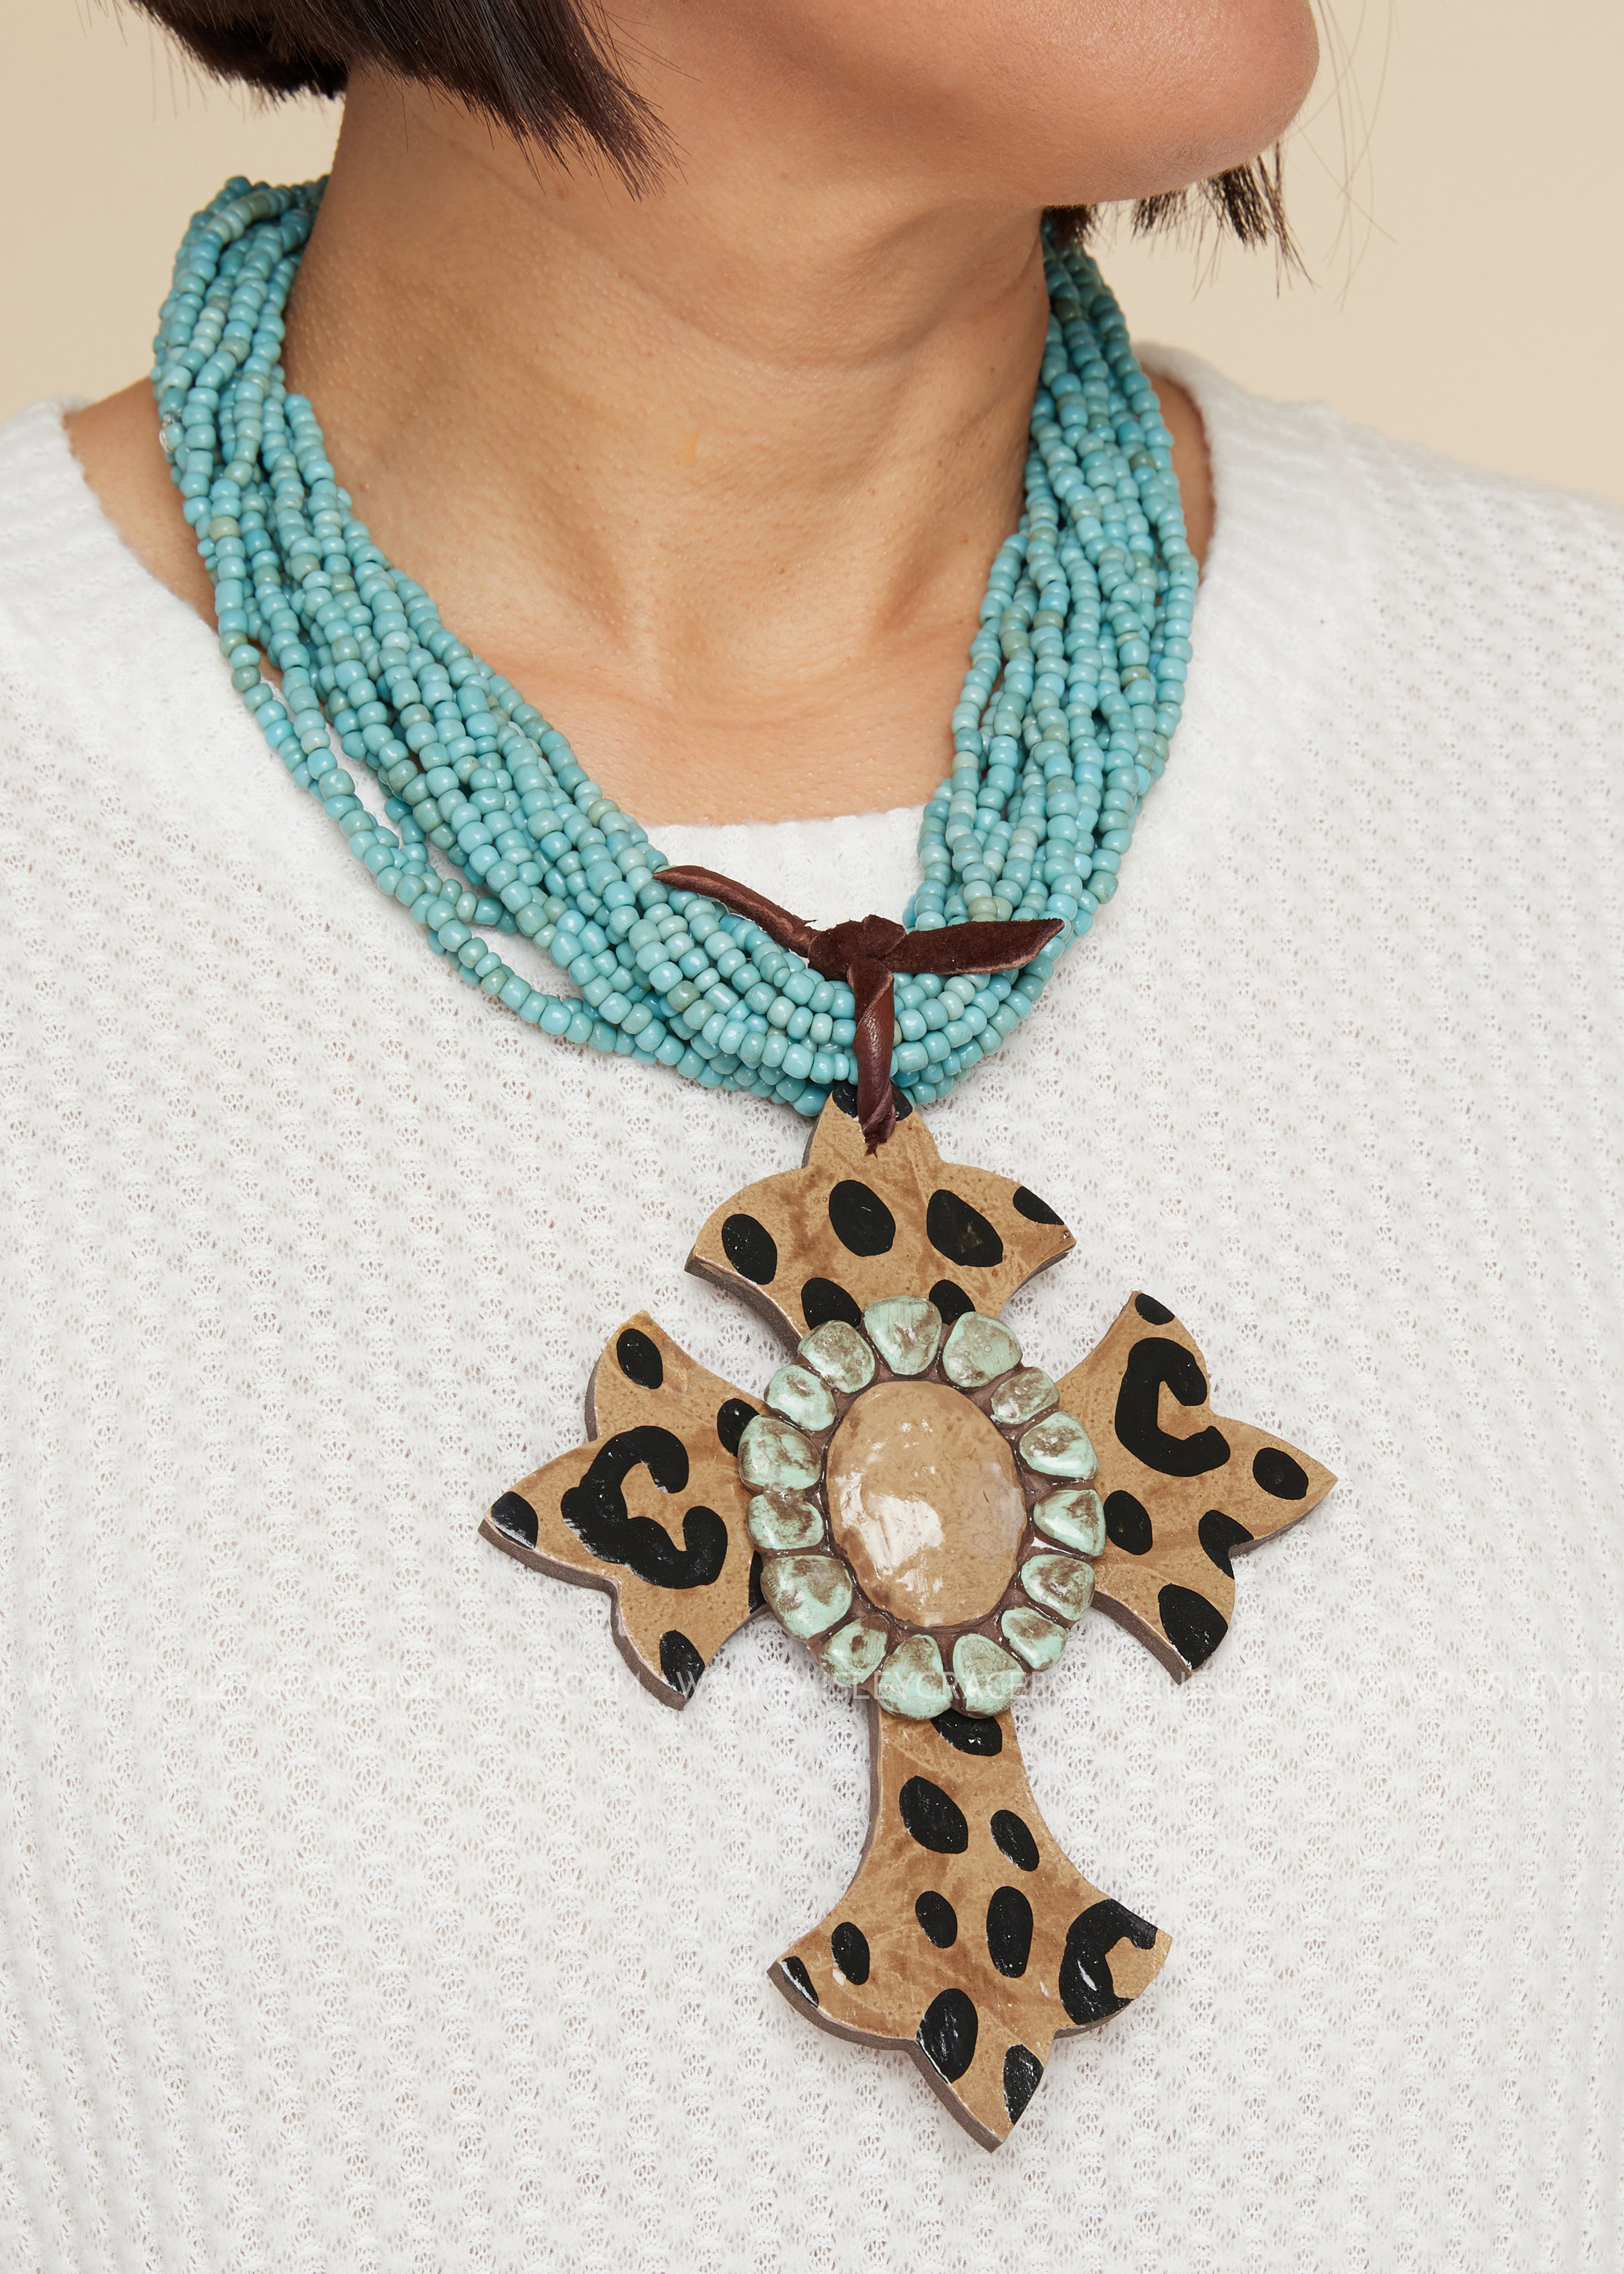 Leopard Cross Clay Seed Bead Necklace